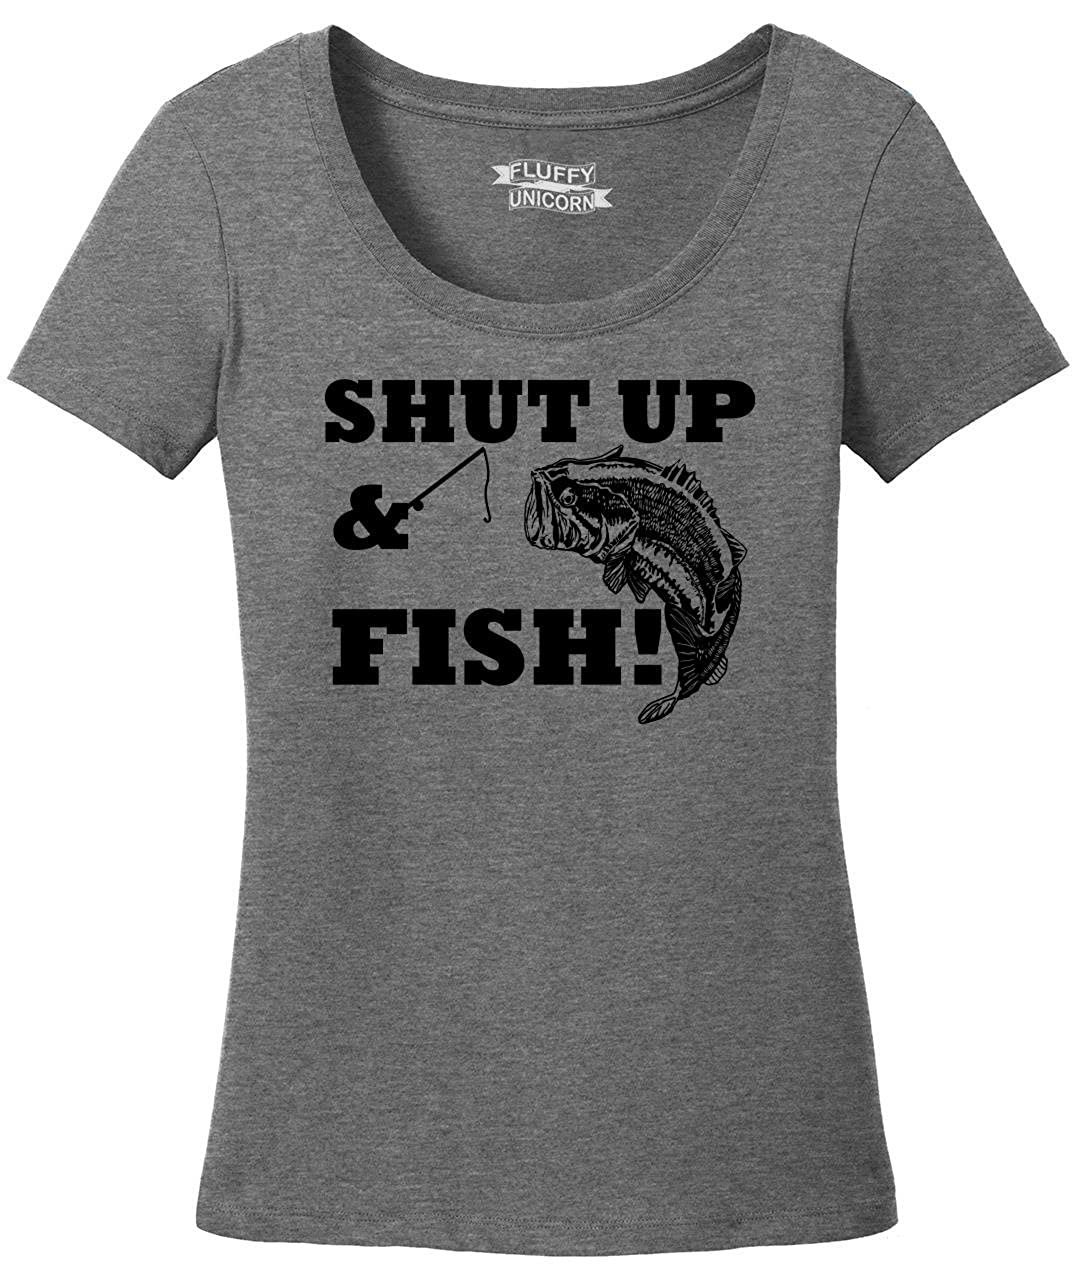 458164c4a Amazon.com: Comical Shirt Ladies Shut up & Fish Funny Country Song T Shirt  Fishing Scoop Tee: Clothing